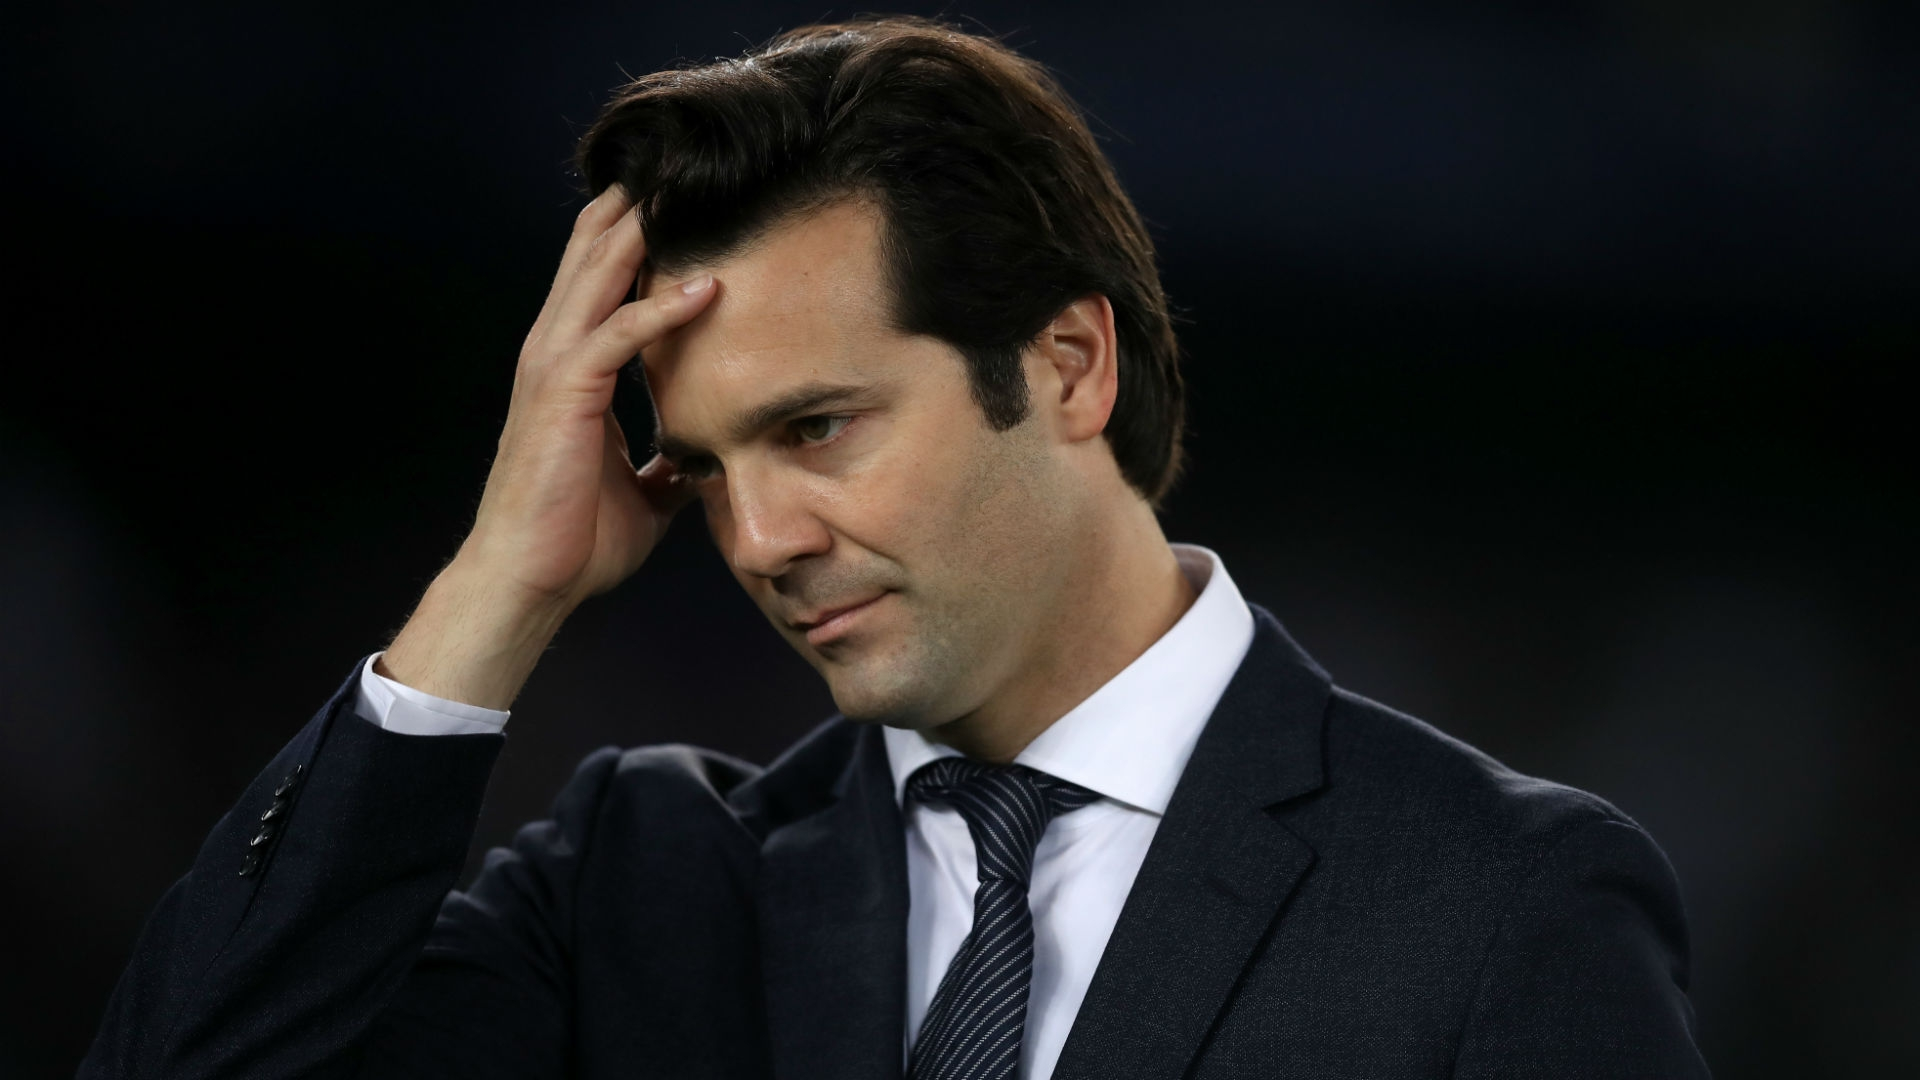 Santiago Solari - Real Madrid manager